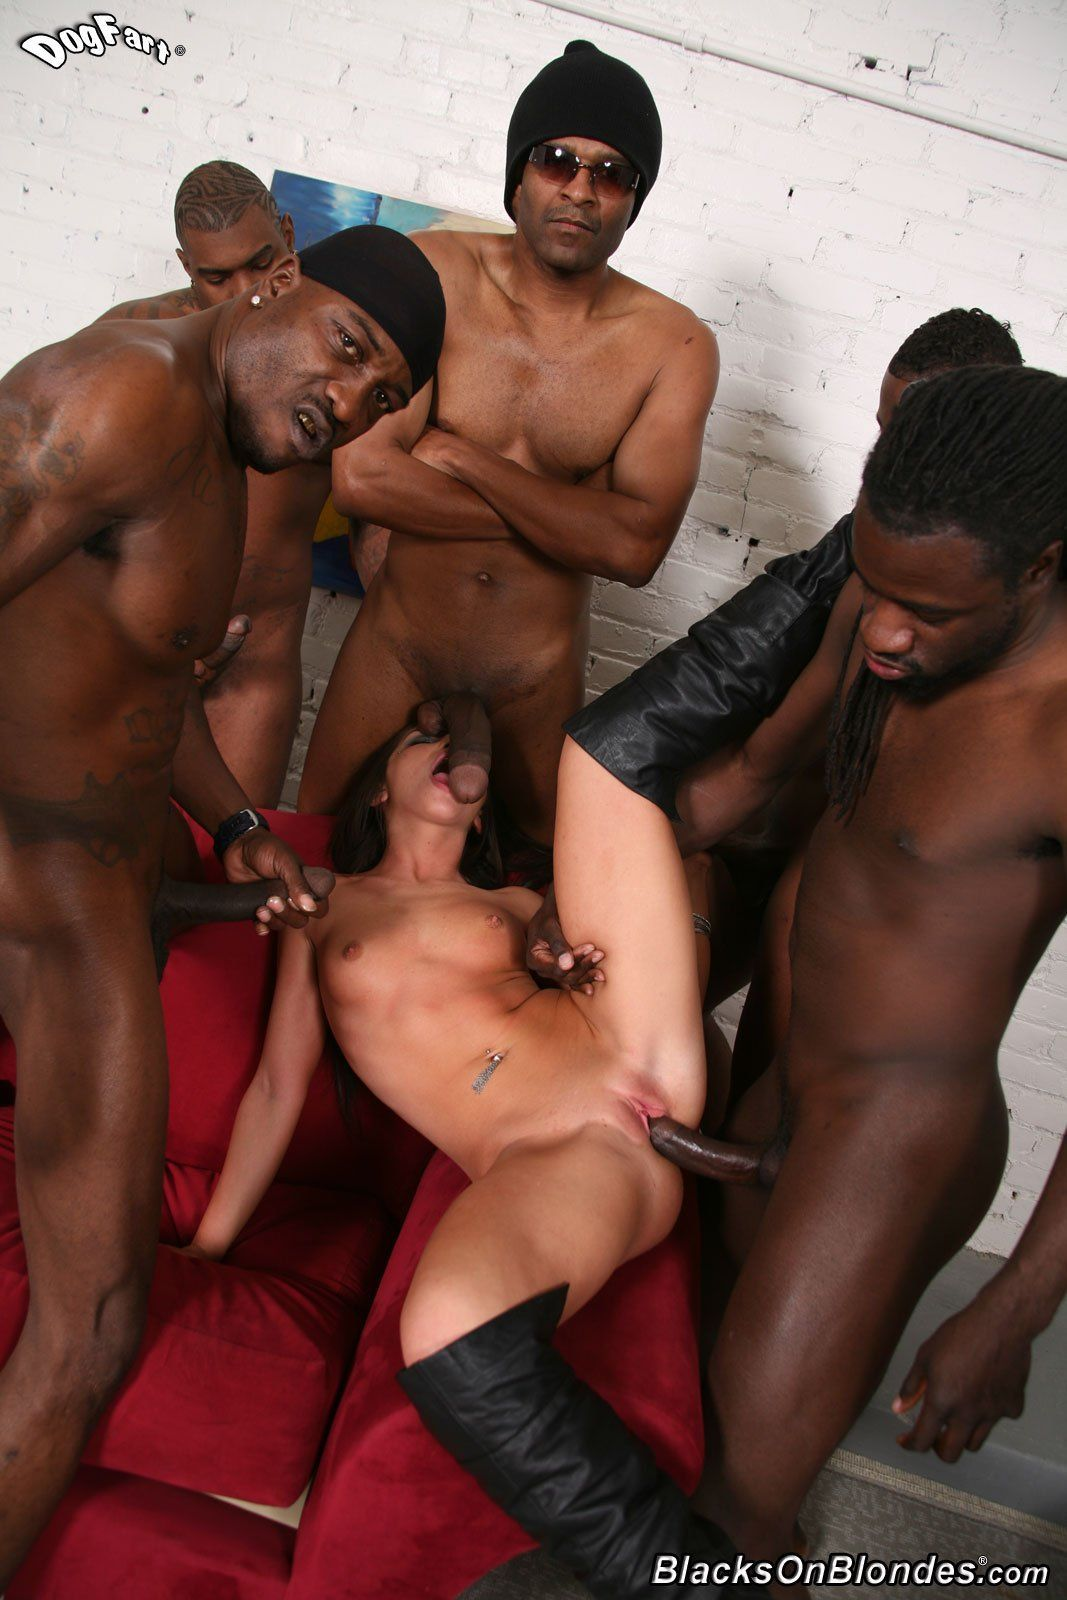 are black lesbian bondage sex something is. Earlier thought